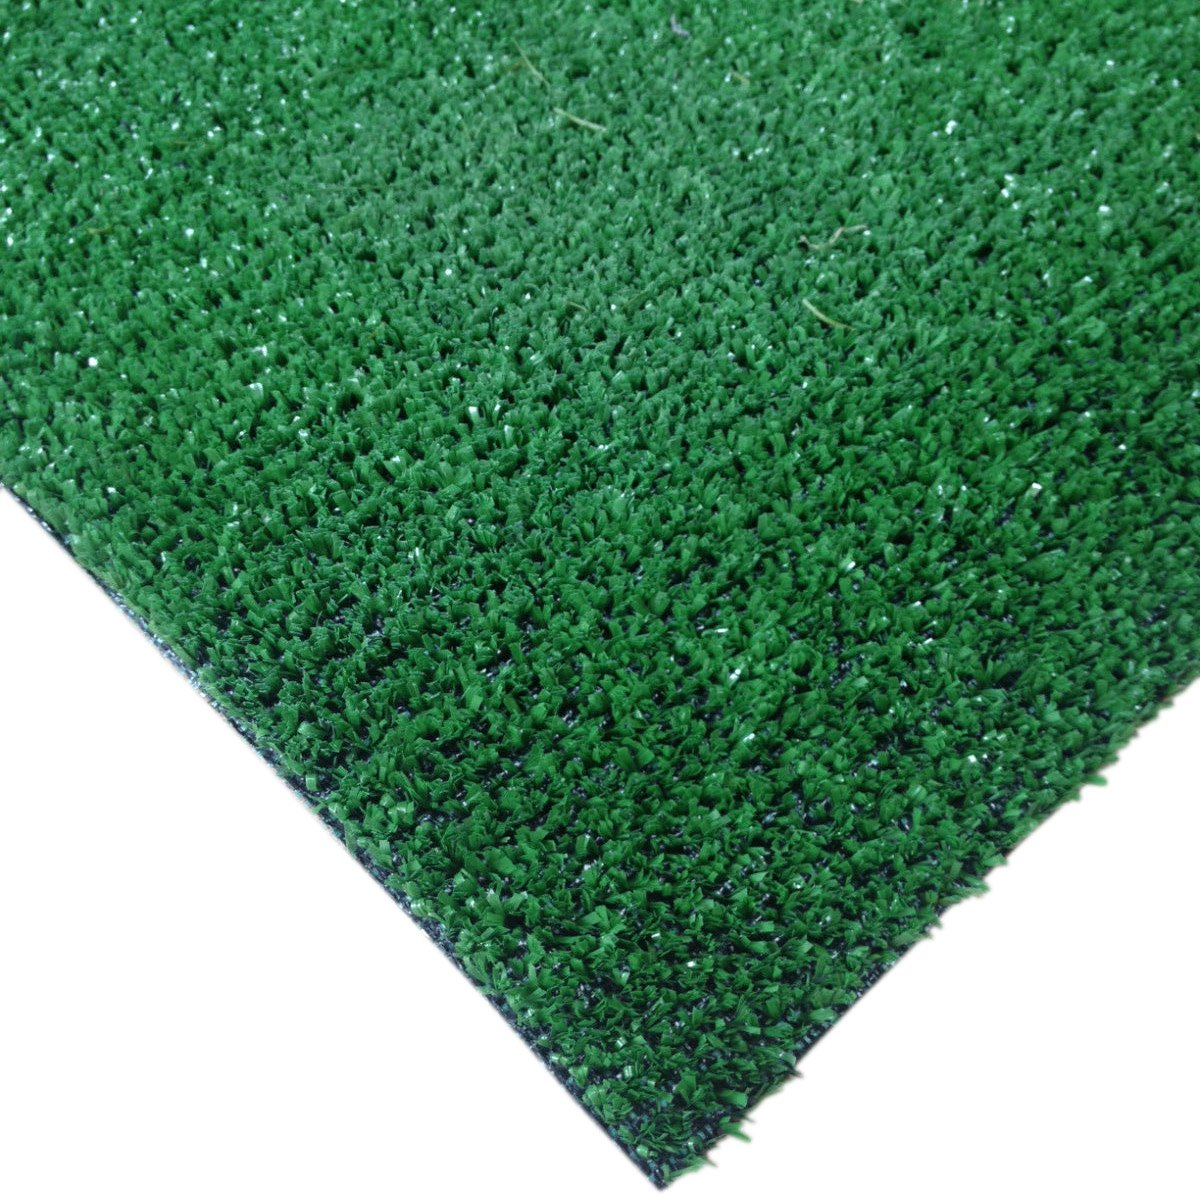 Amazon.com: Synturfmats Green Artificial Grass Carpet Rug - Indoor ...